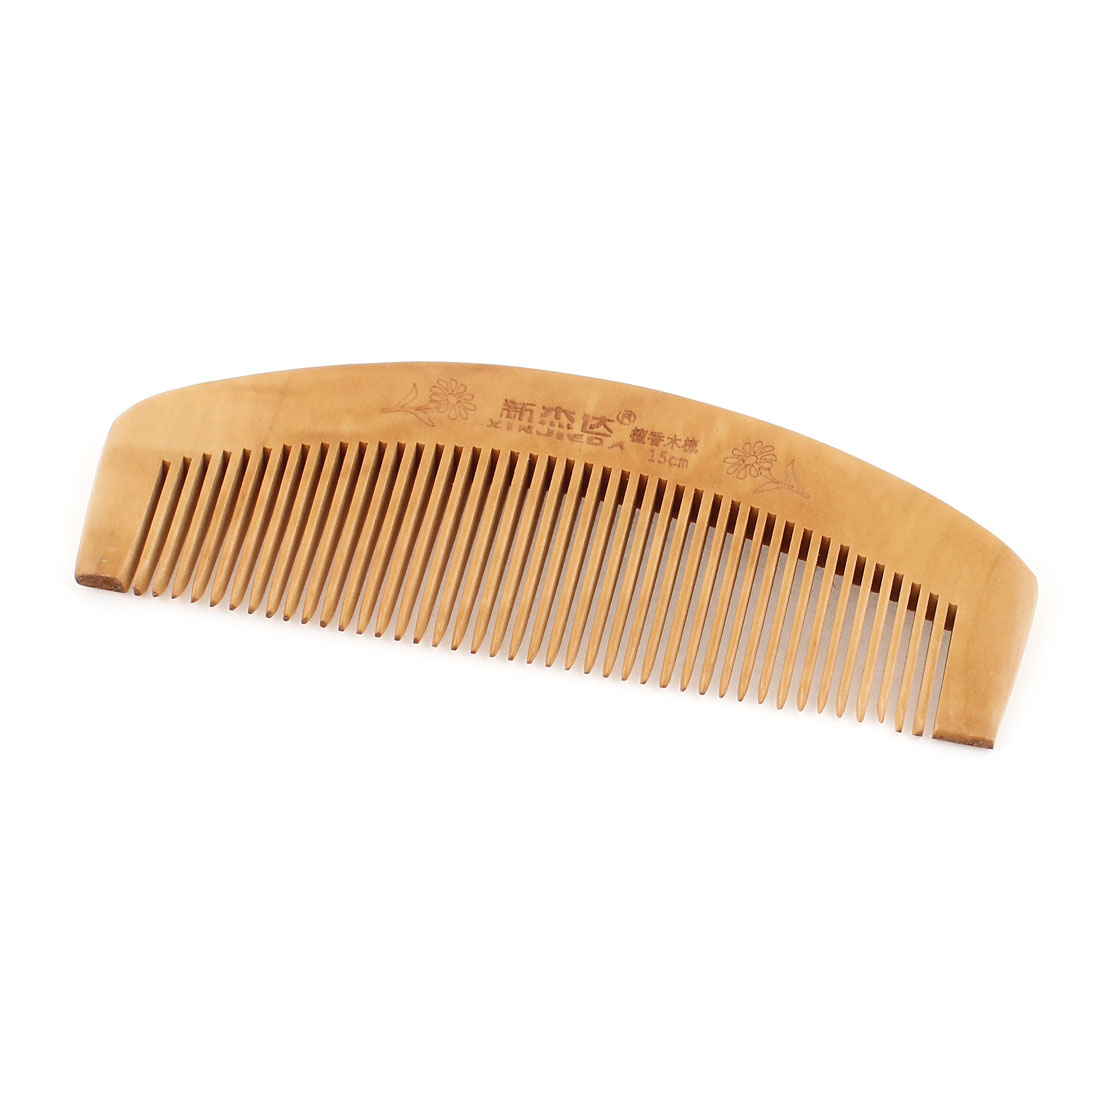 Wooden Antistatic Handmade Chinese Style Narrow Tooth Hair Comb 15cm Long